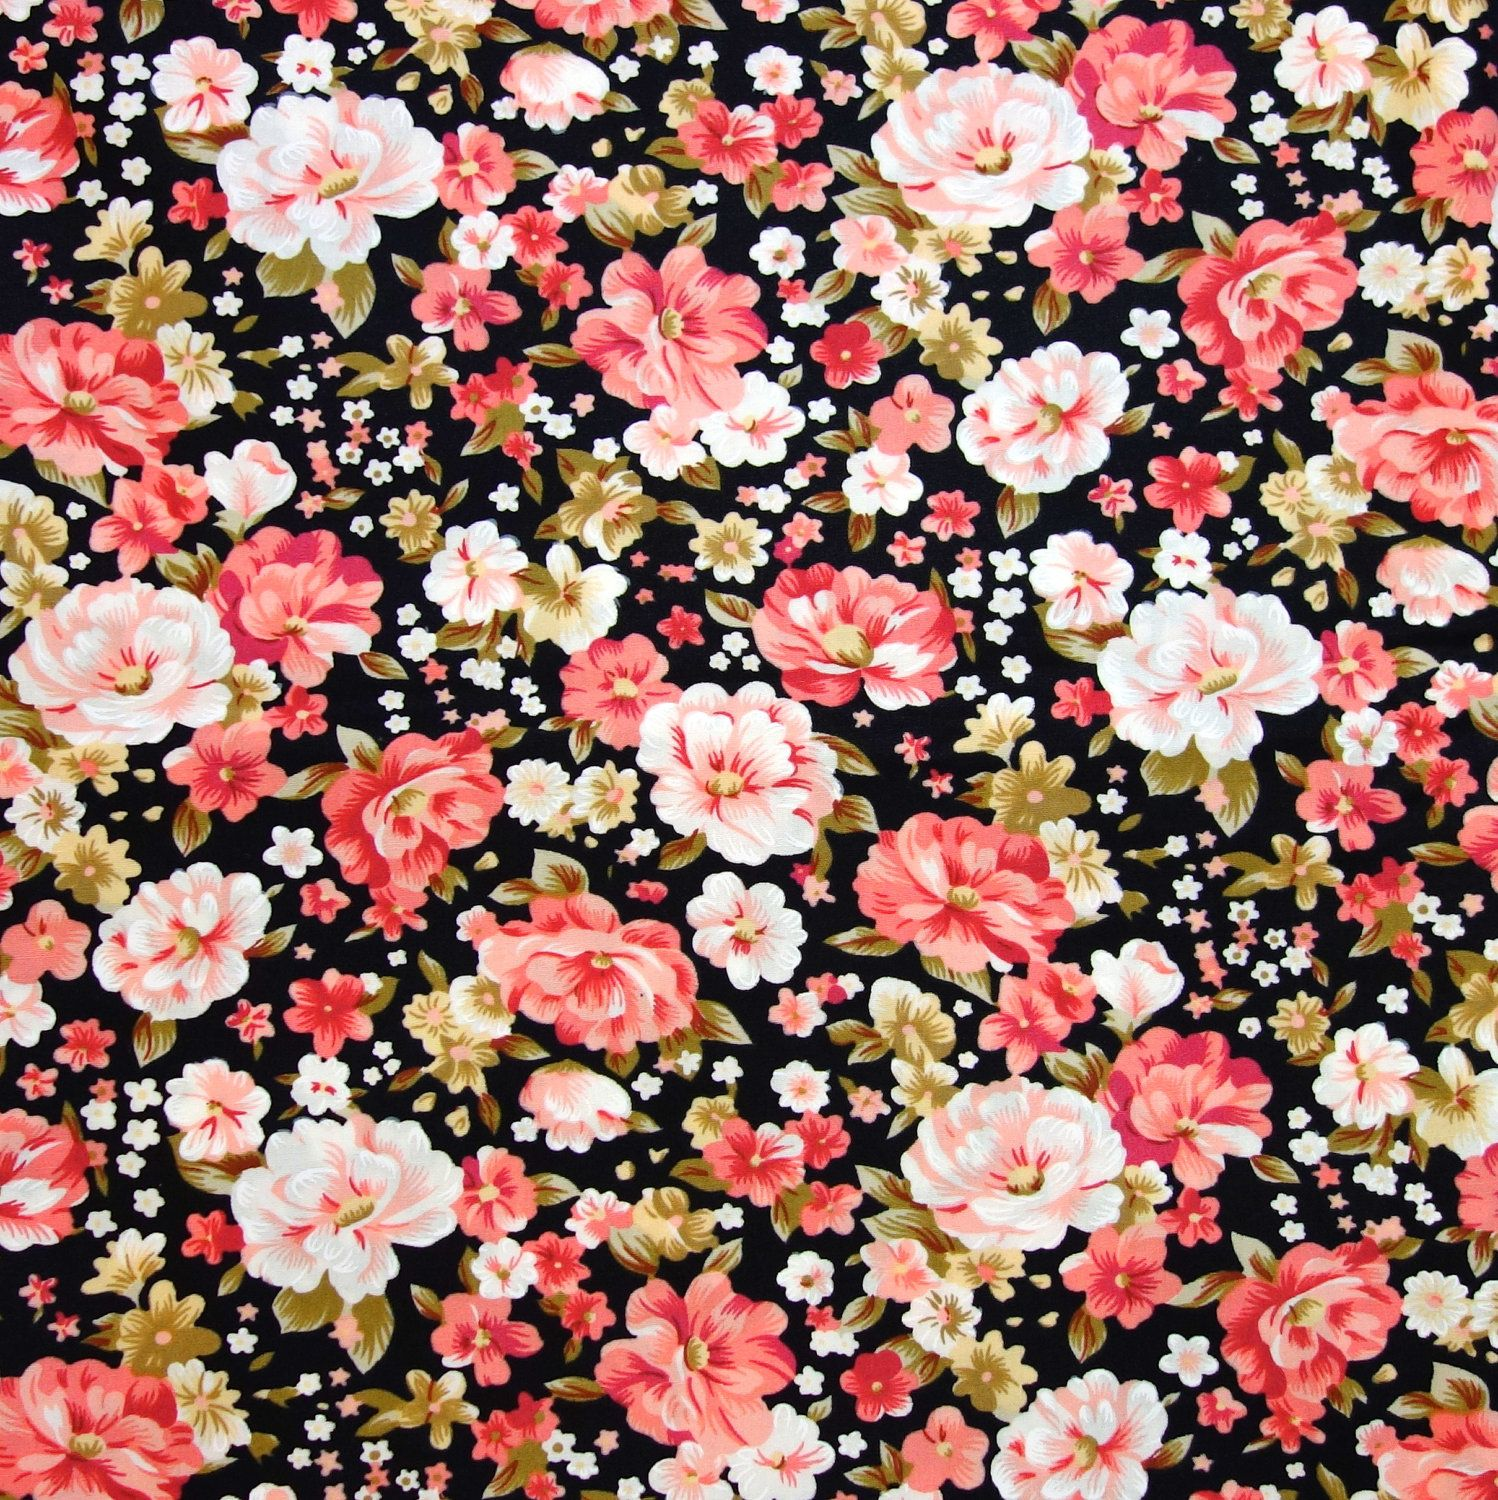 Vintage Floral Pattern Background Tumblr